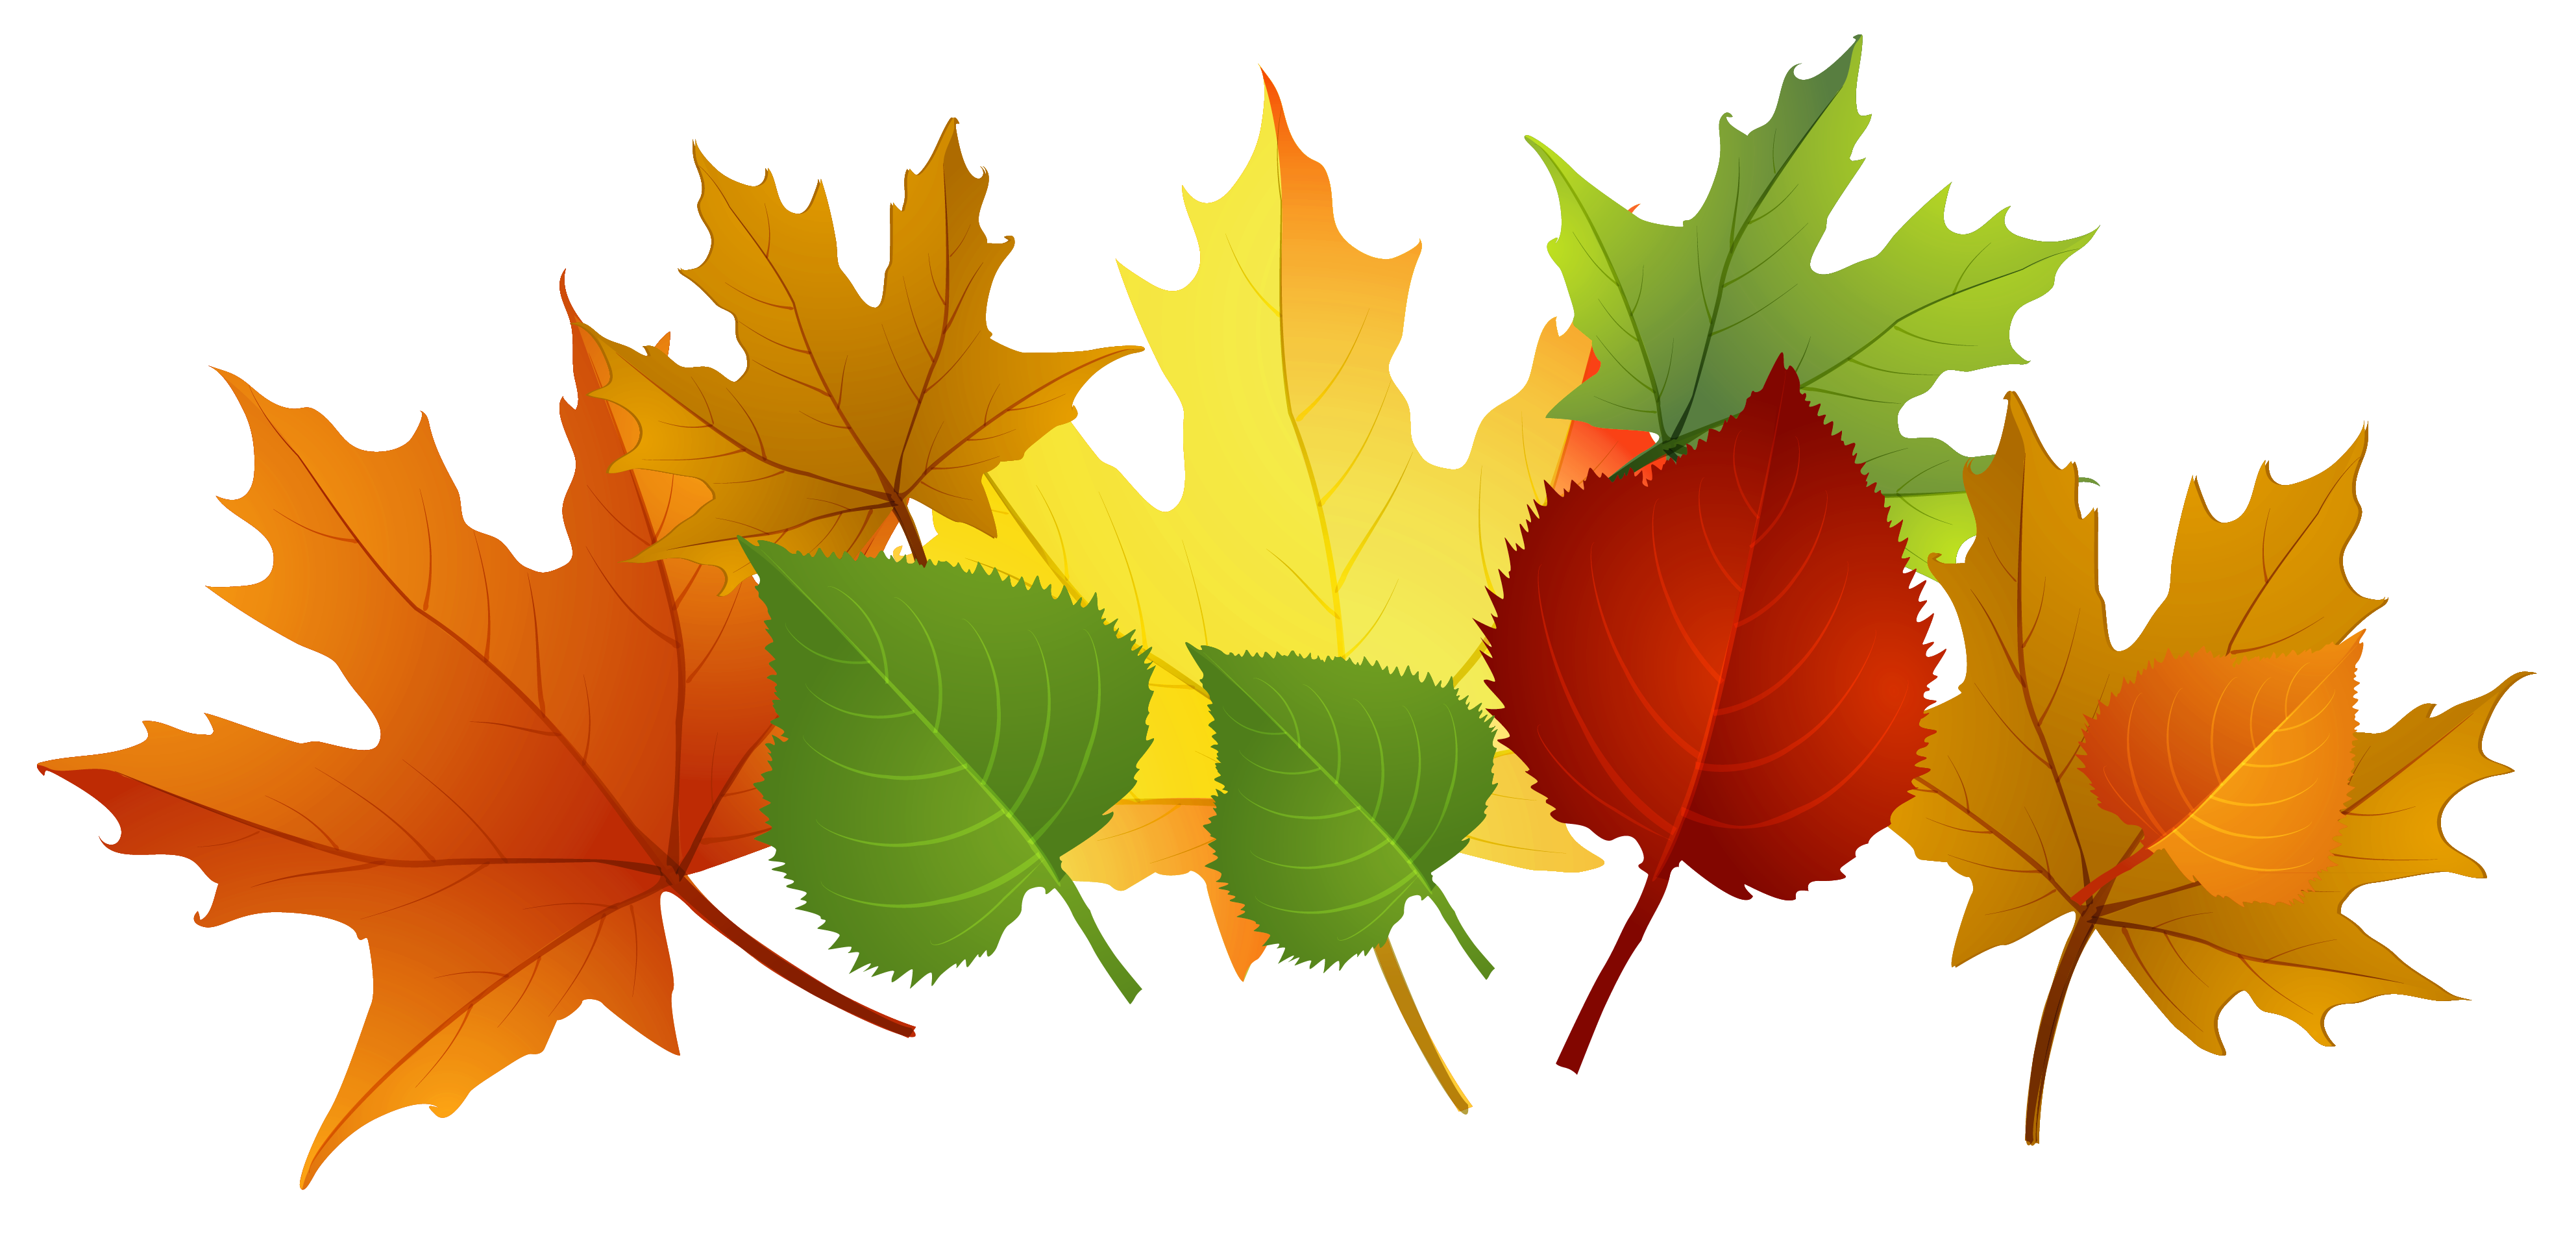 Fall leaves photos of fall leaf clip art leaves free